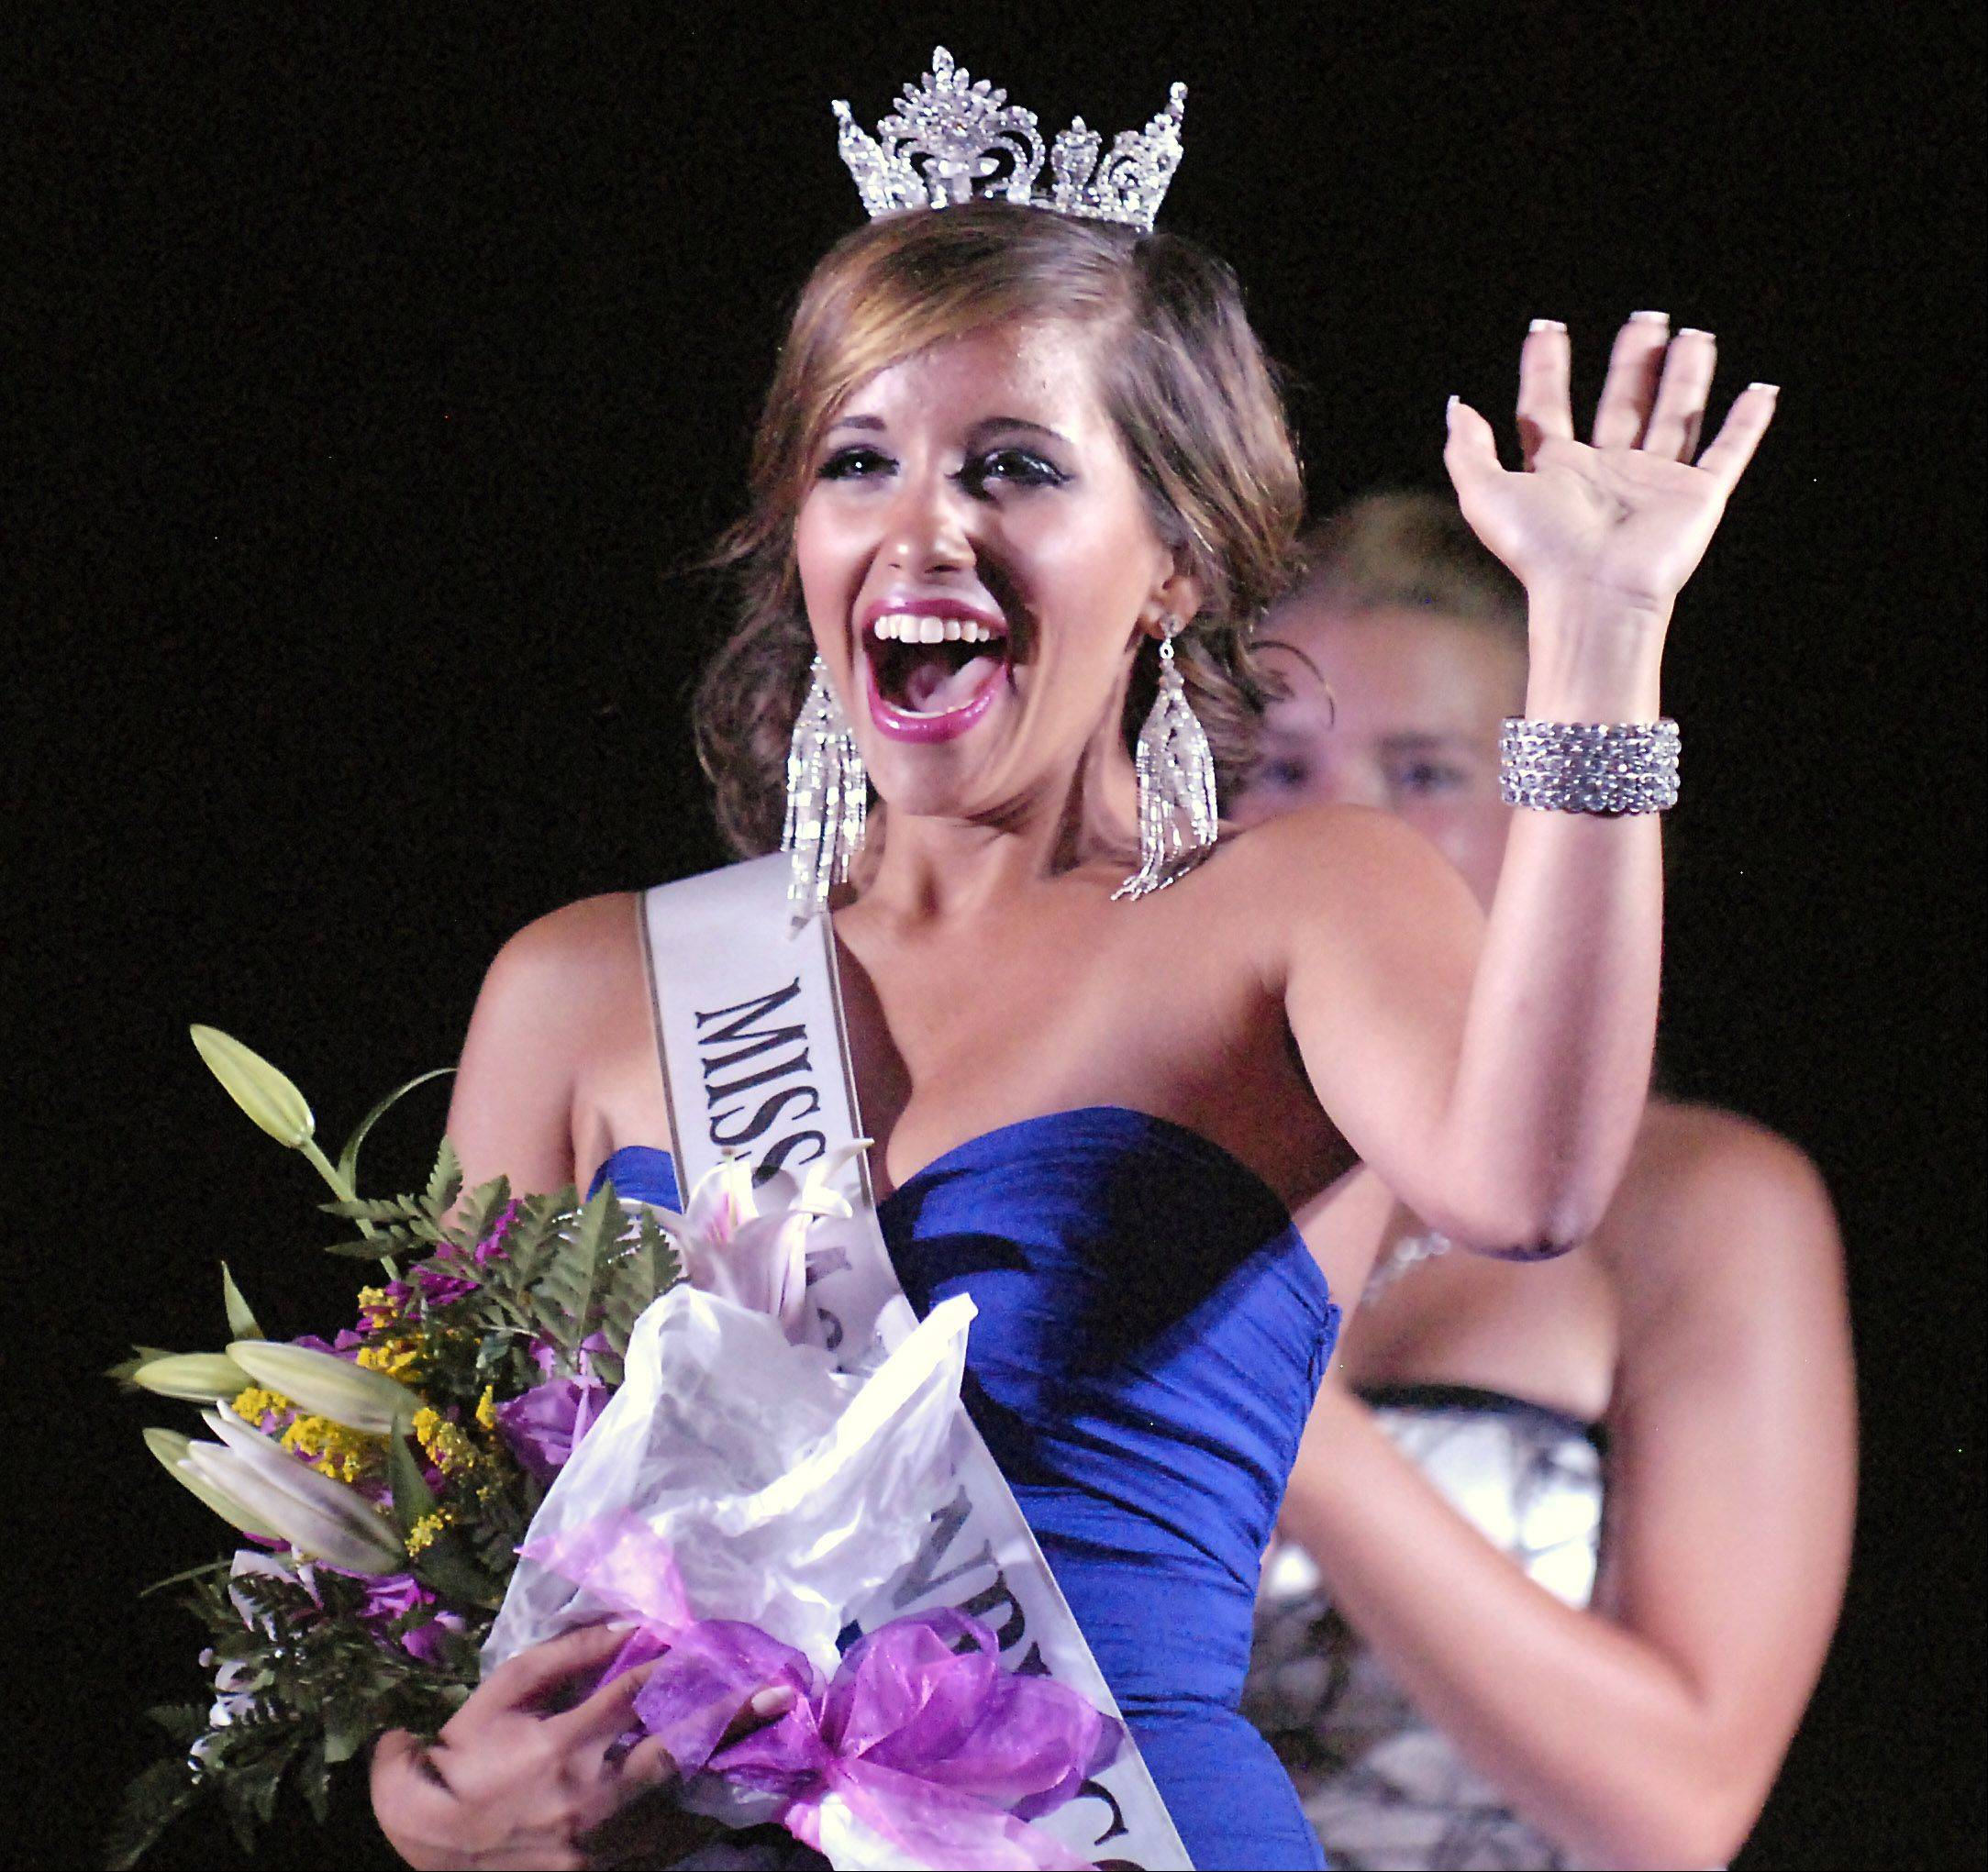 Samantha Bolet, 17, of Lake in the Hills wins the crown in the 2012 McHenry County Queen pageant at the McHenry County Fair.